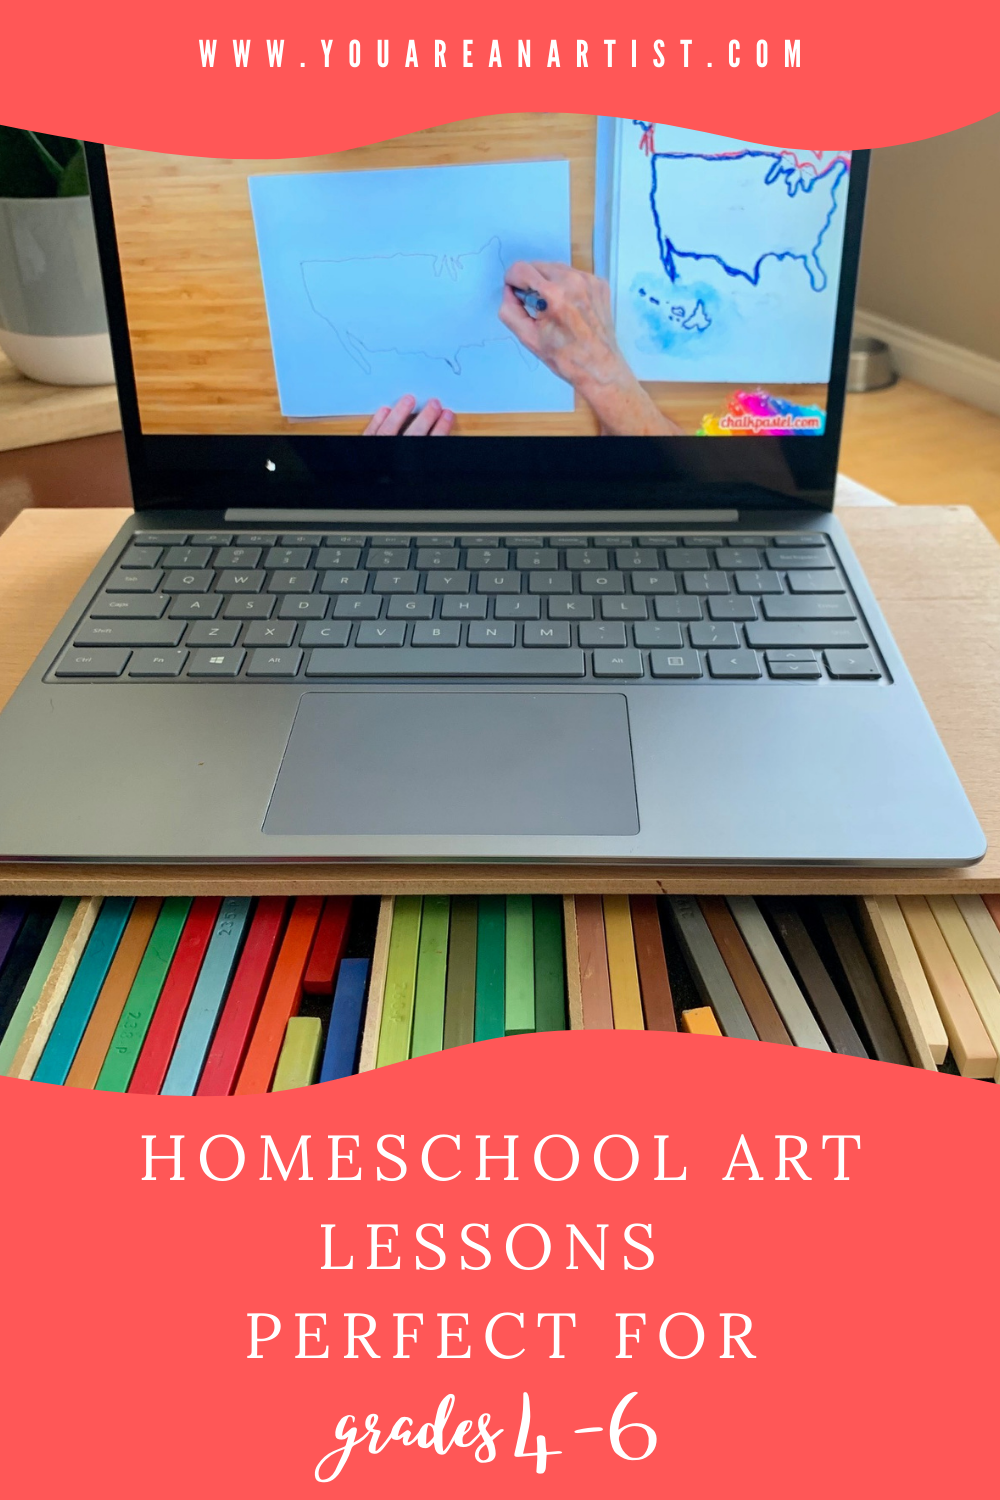 As our children get older, finding homeschool art lessons that are challenging and age appropriate can be difficult. Thankfully, we have found an assortment of unit studies and art lessons that are perfect for the late elementary grades 4-6.